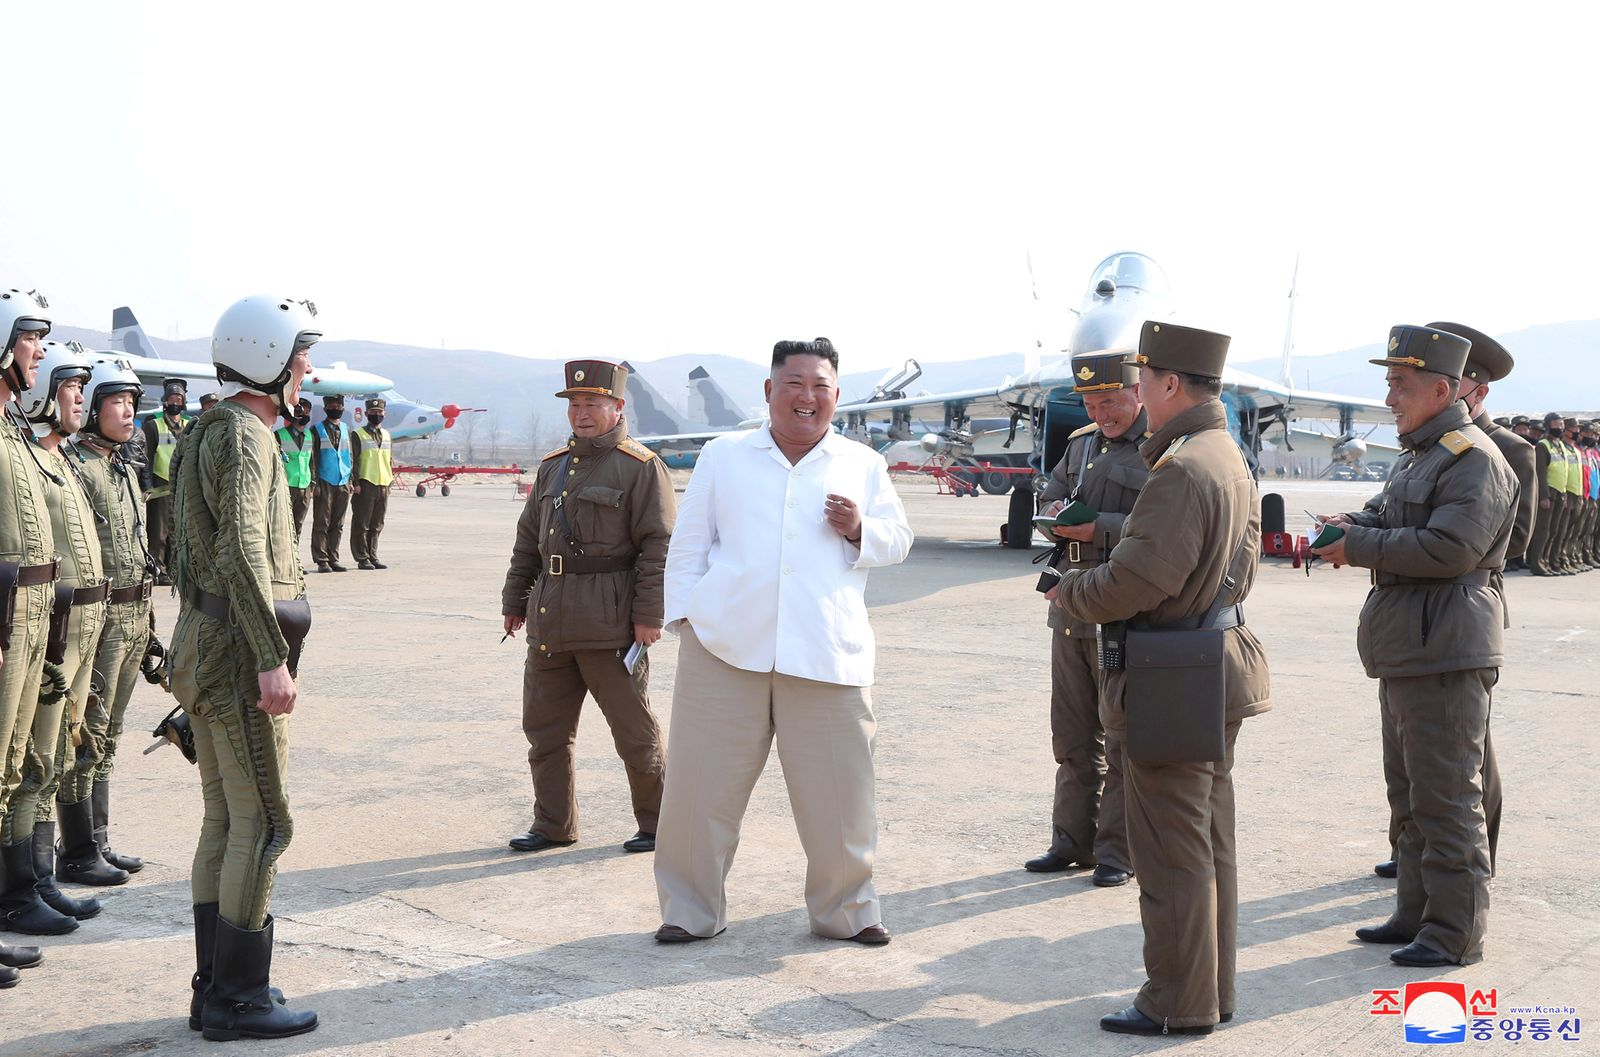 North Korean leader Kim Jong Un gives field guidance during his visit to a pursuit assault plane group under the Air and Anti-Aircraft Division in the western area